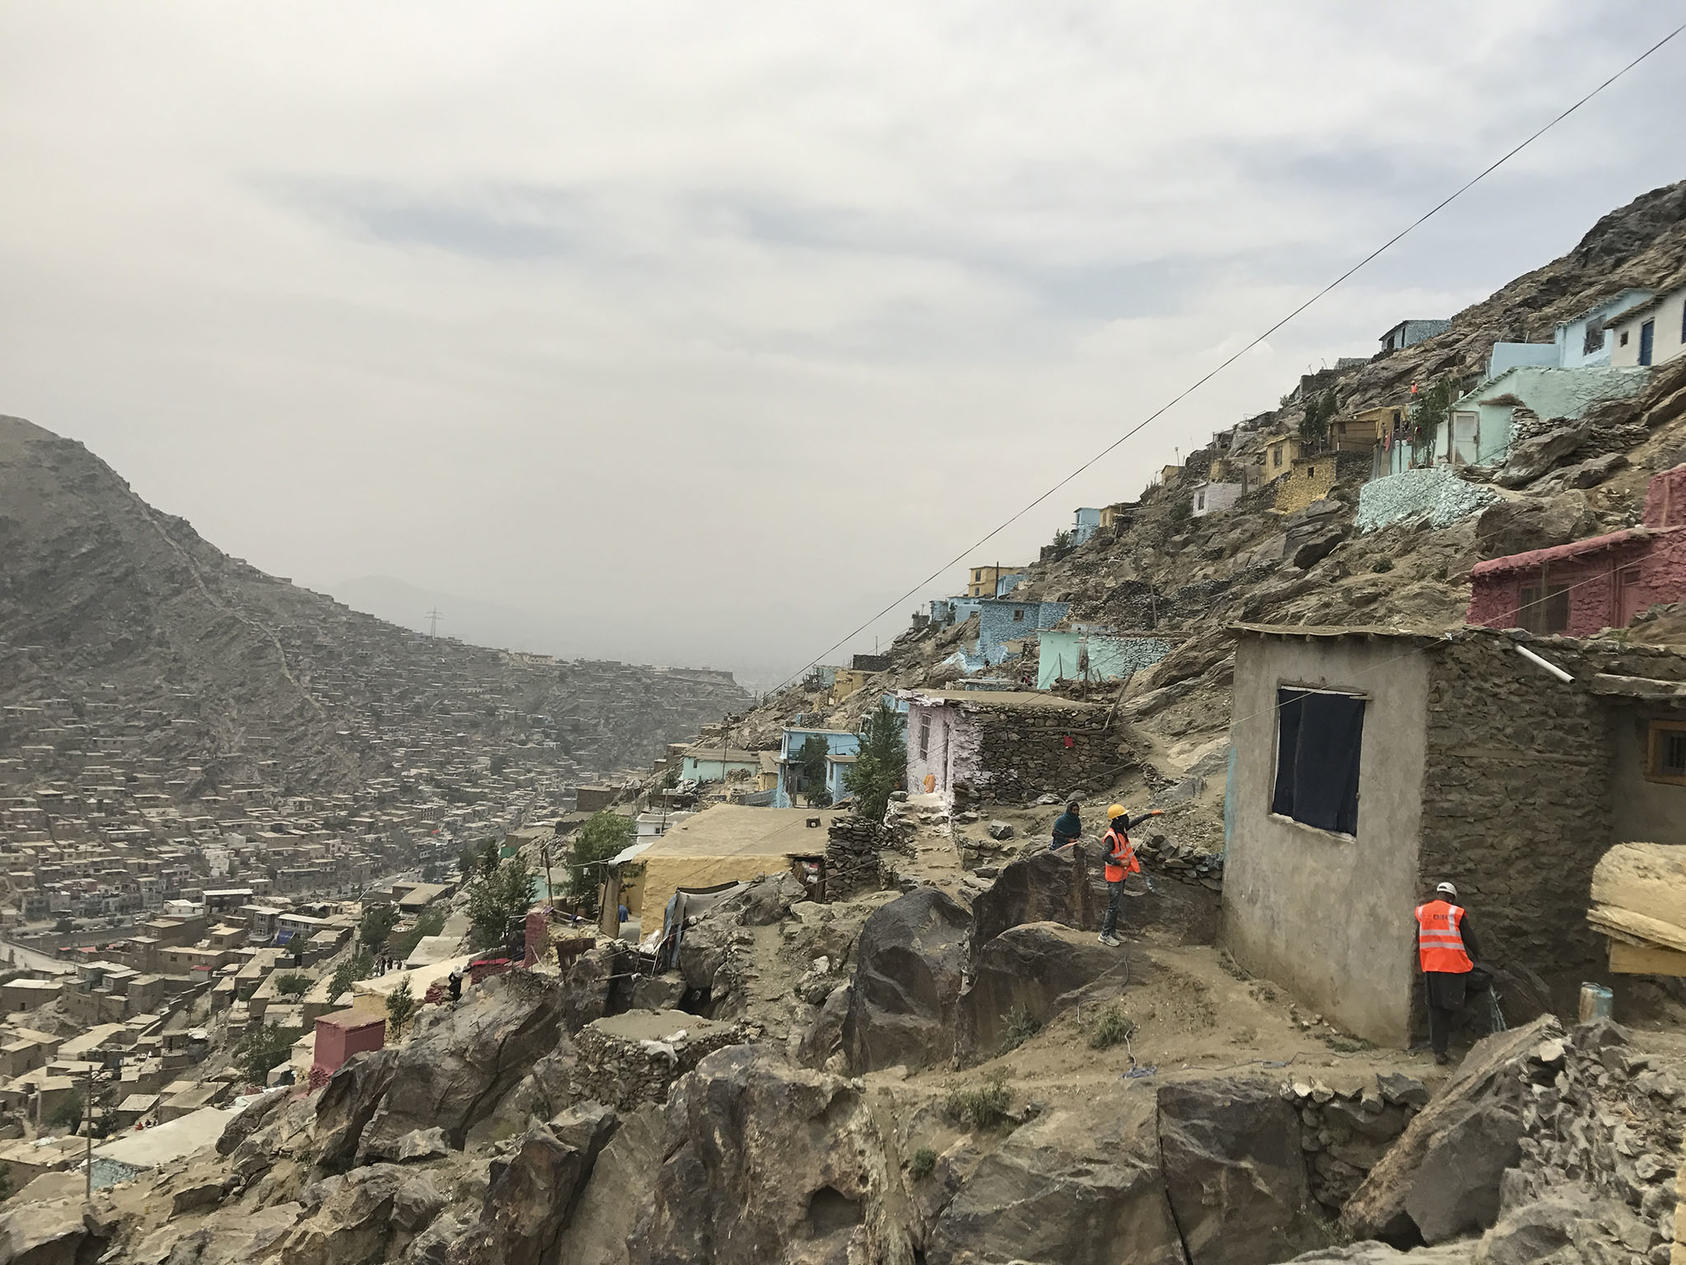 Slum neighborhoods climb Kabul's mountains, a result of the city's wartime population spike. Afghanistan will need a unified aid effort to rebuild its economy and fulfill any peace accord. (Fahim Abed/The New York Times)